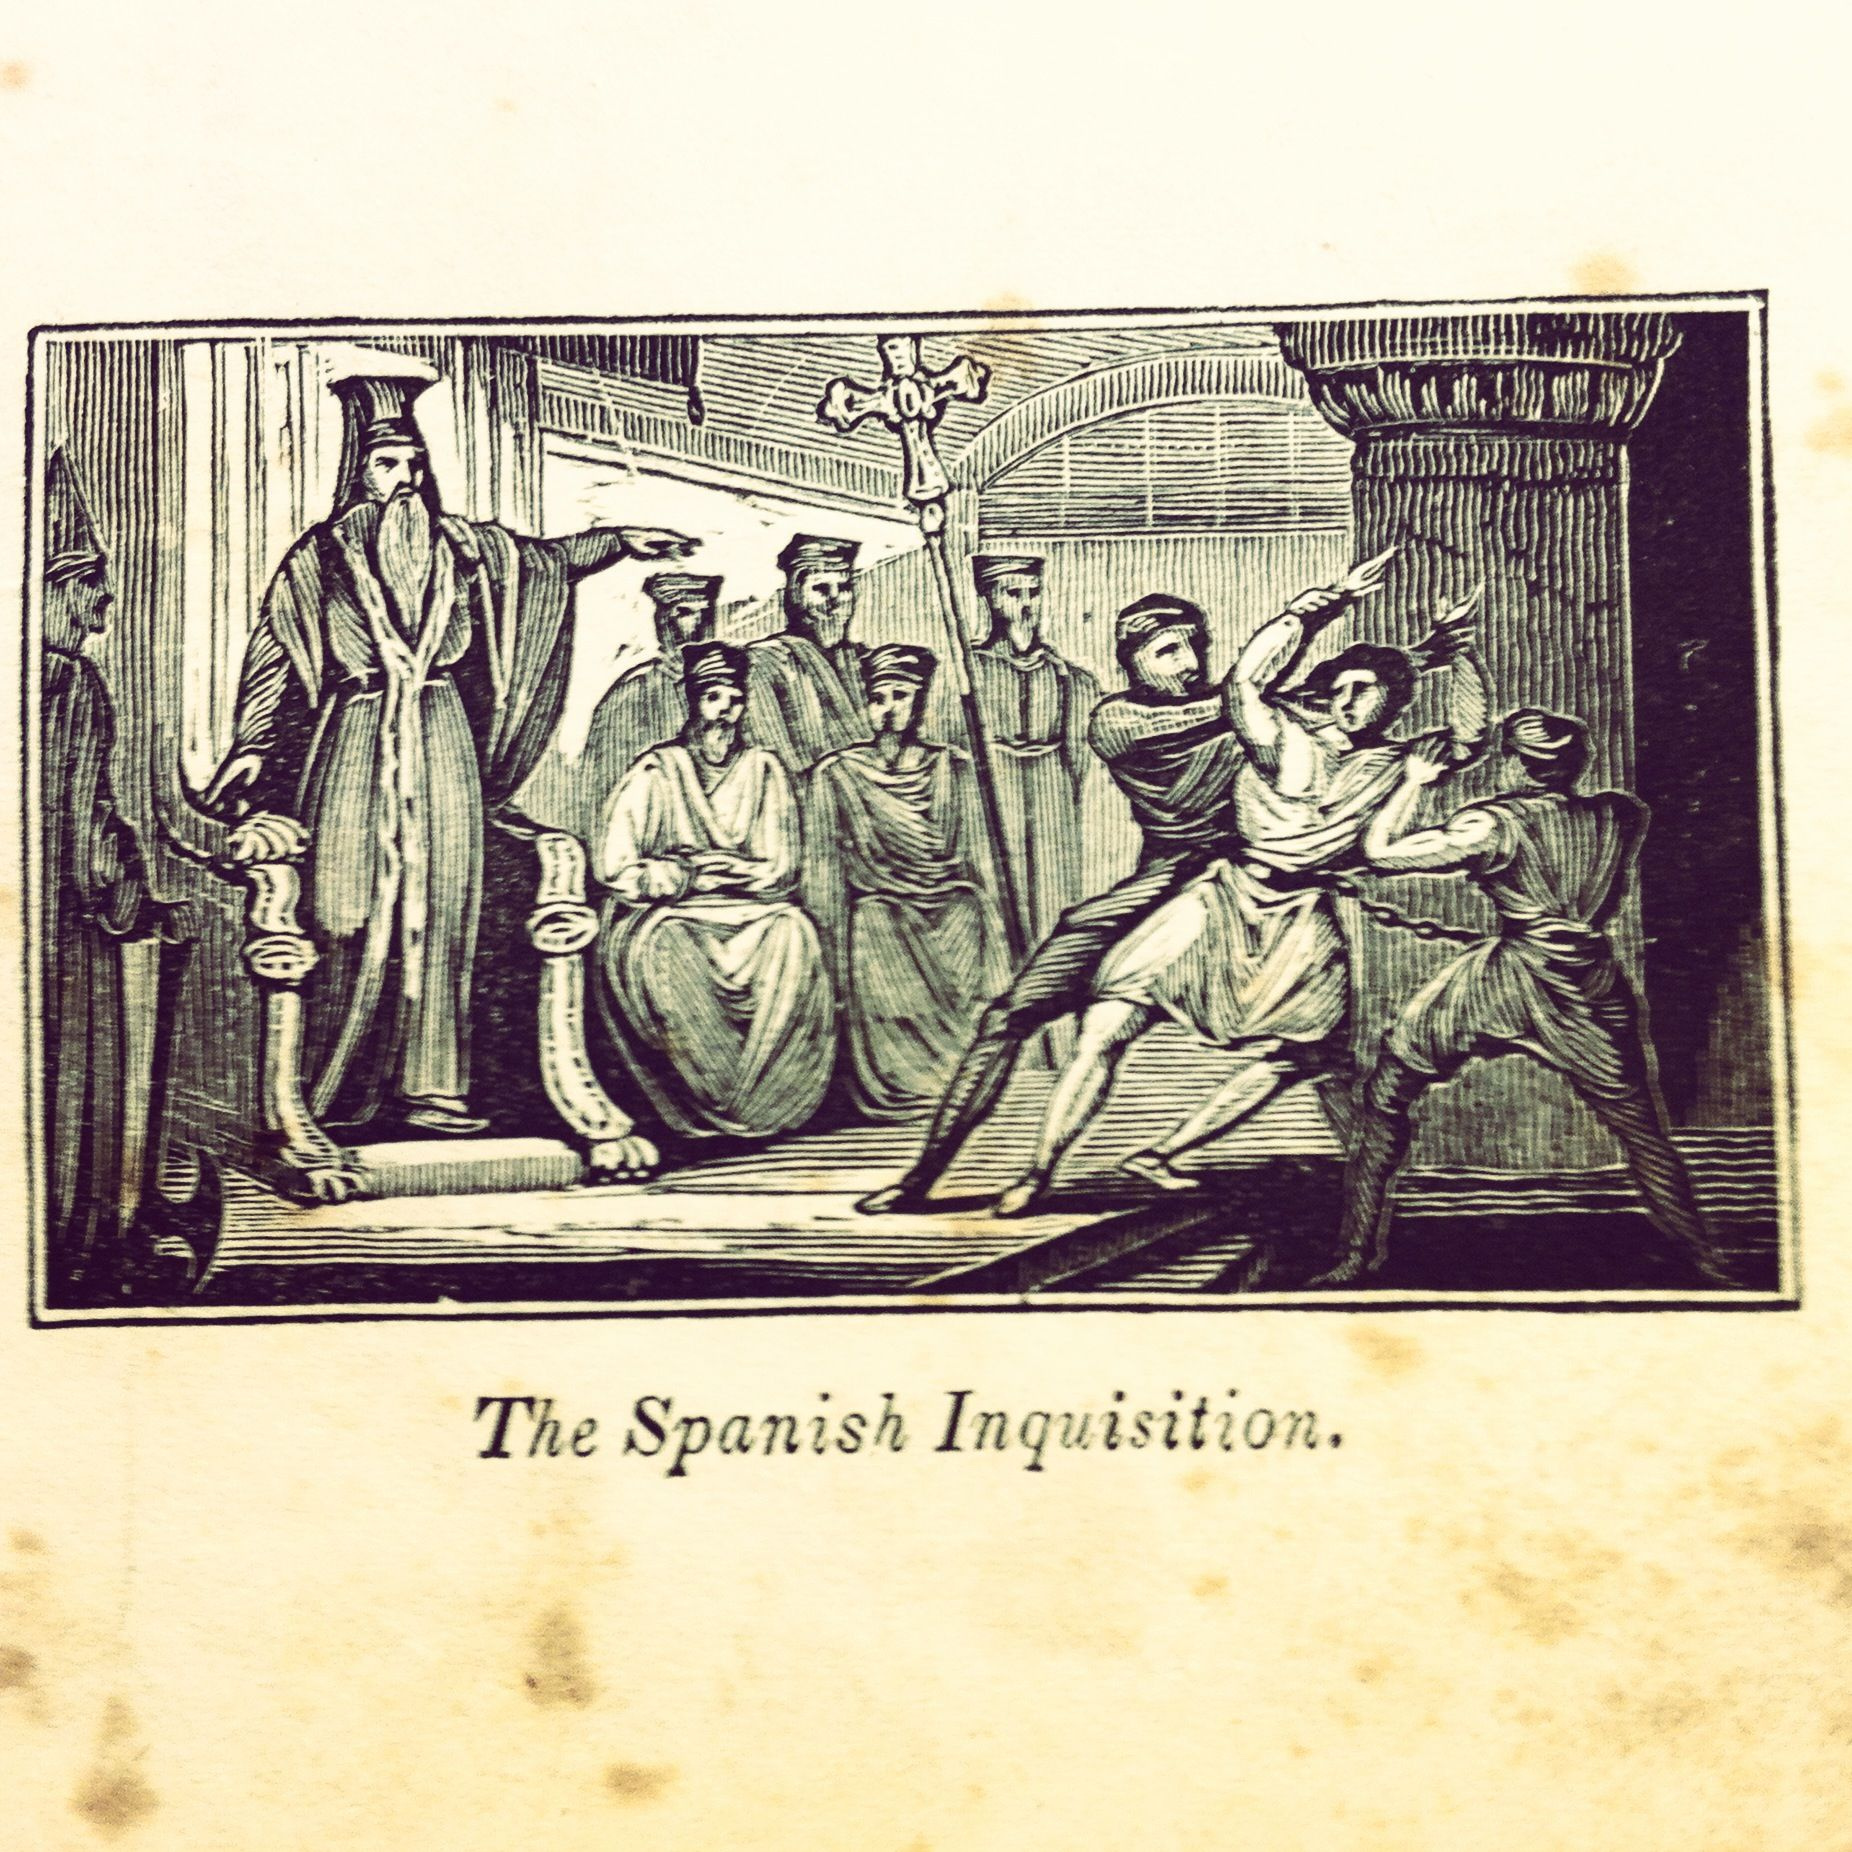 spanish inquisition engraving libraries book porn spanish inquisition engraving